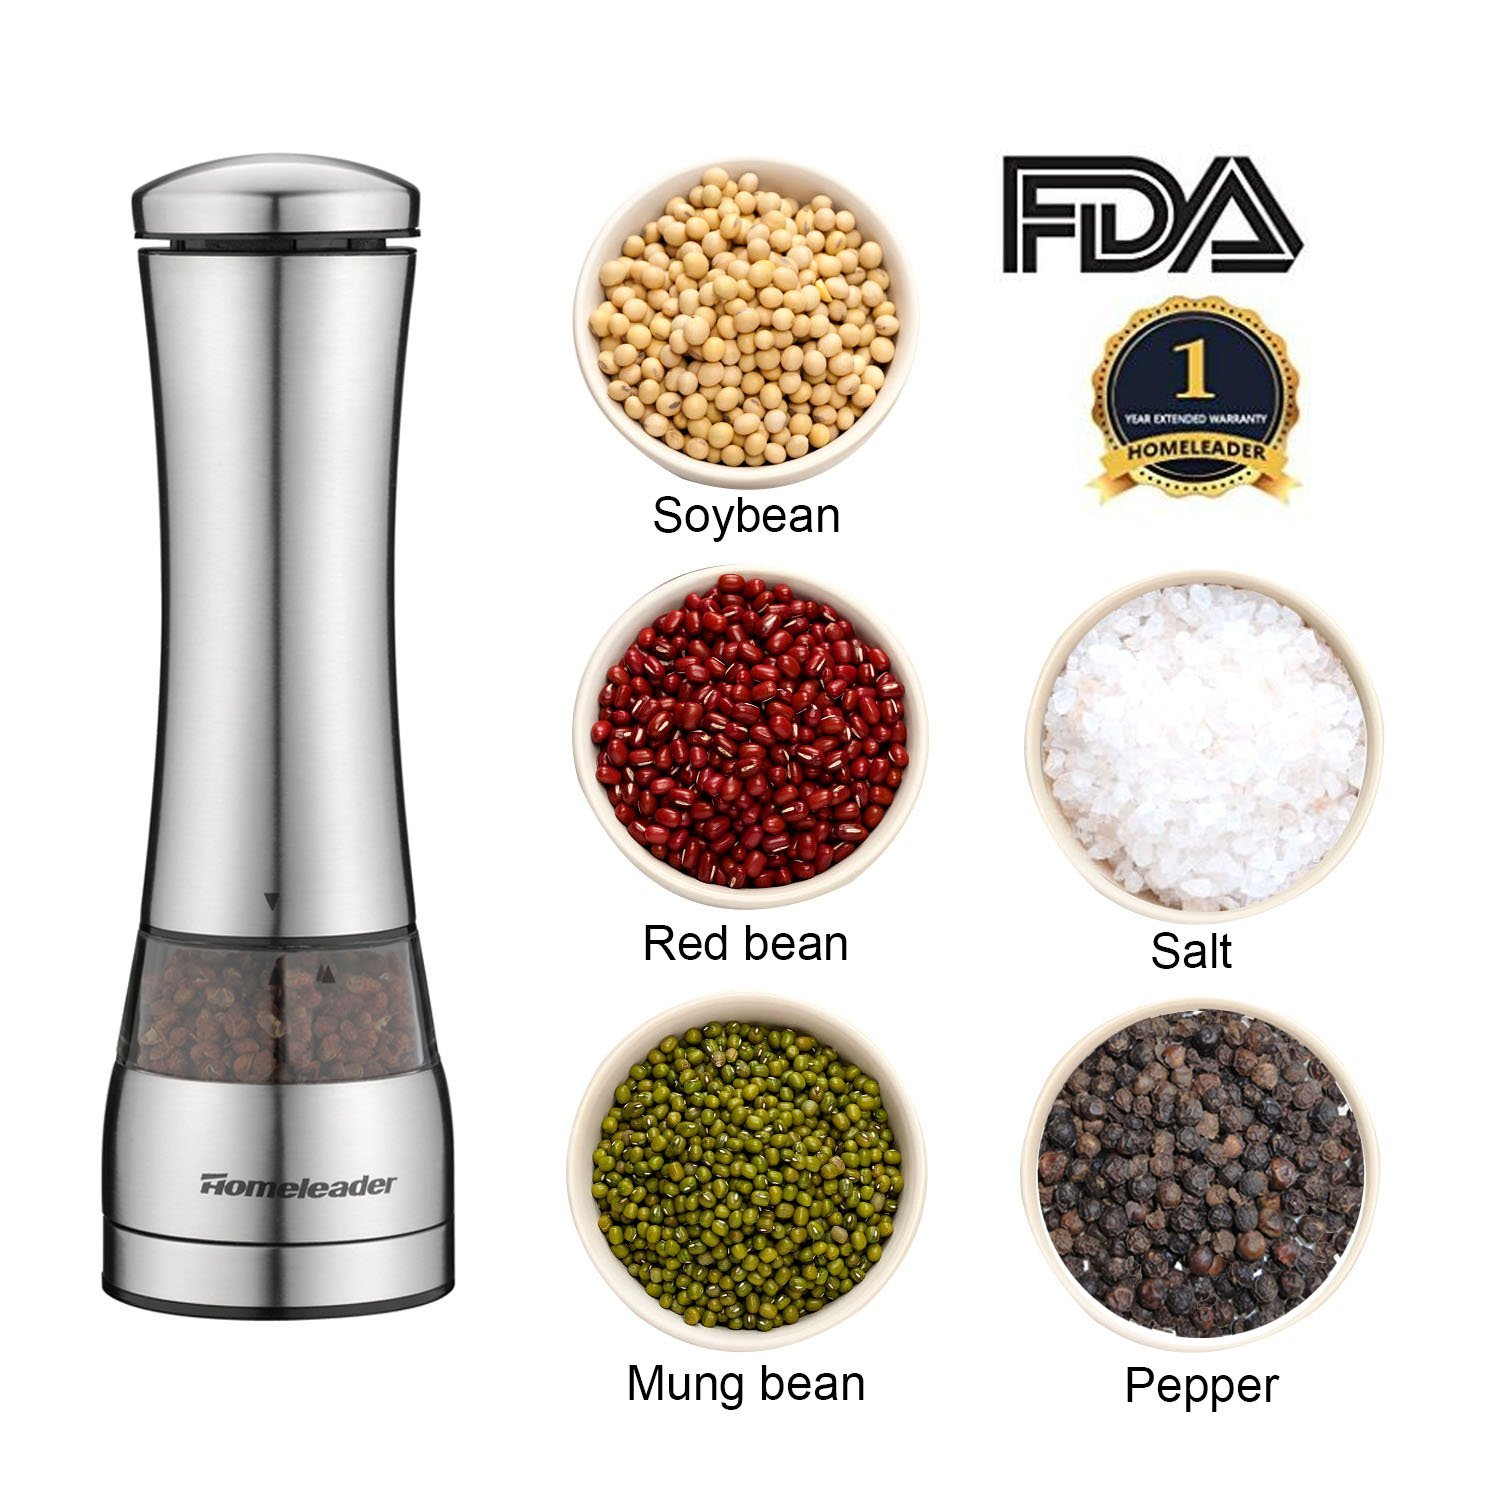 Electric Pepper Grinder or Salt Mill, Stainless Steel Salt and Pepper Grinder with Adjustable Coarseness Ceramic Mechanism, Battery Powered Electric Spice Grinder with LED Light